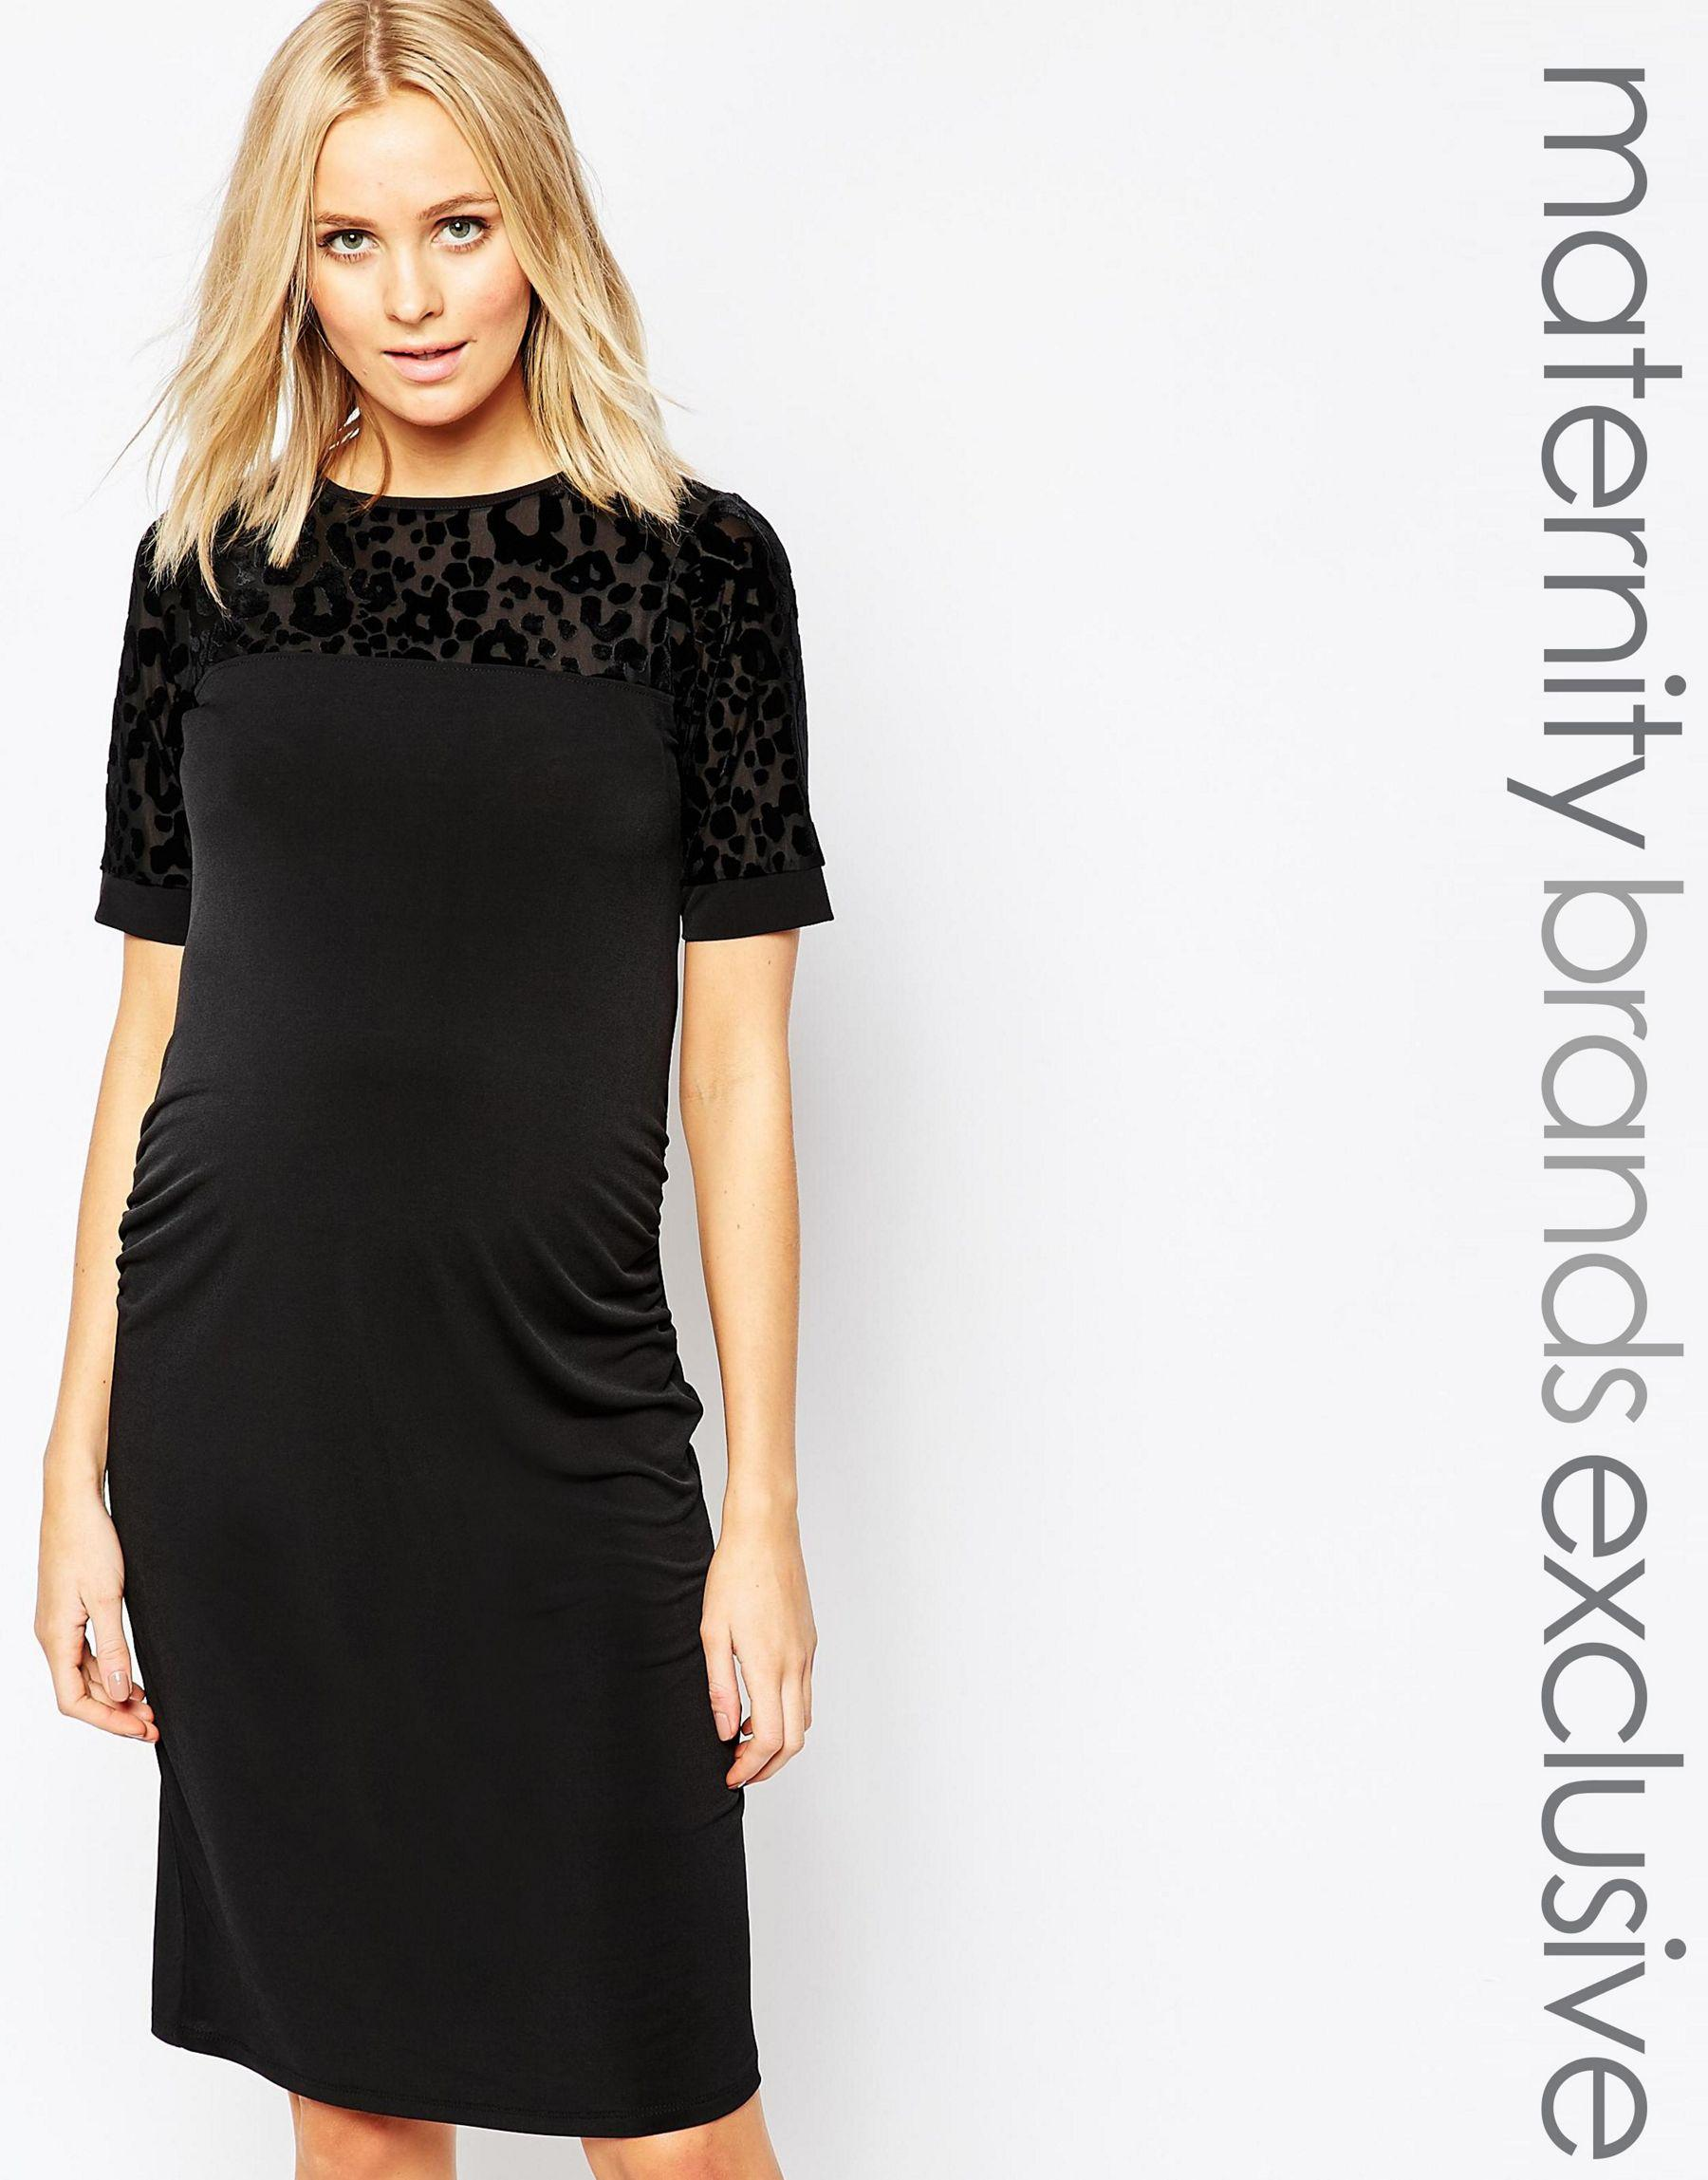 12a0f0b87503d Lyst - Bluebelle Maternity Burnout Body-conscious Dress in Black